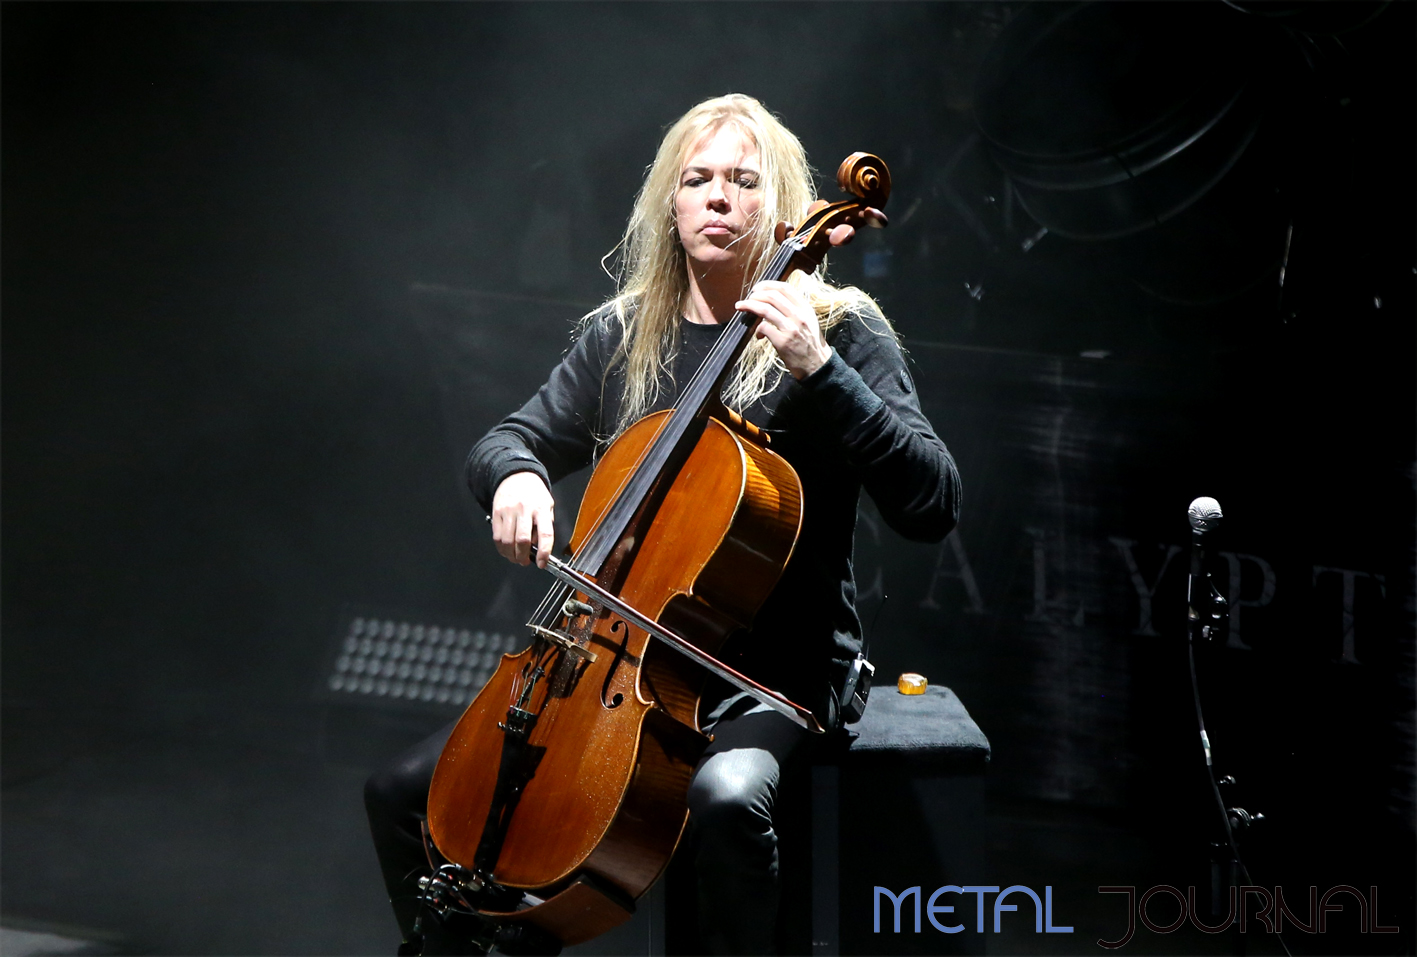 apocalyptica-metal journal pic 4